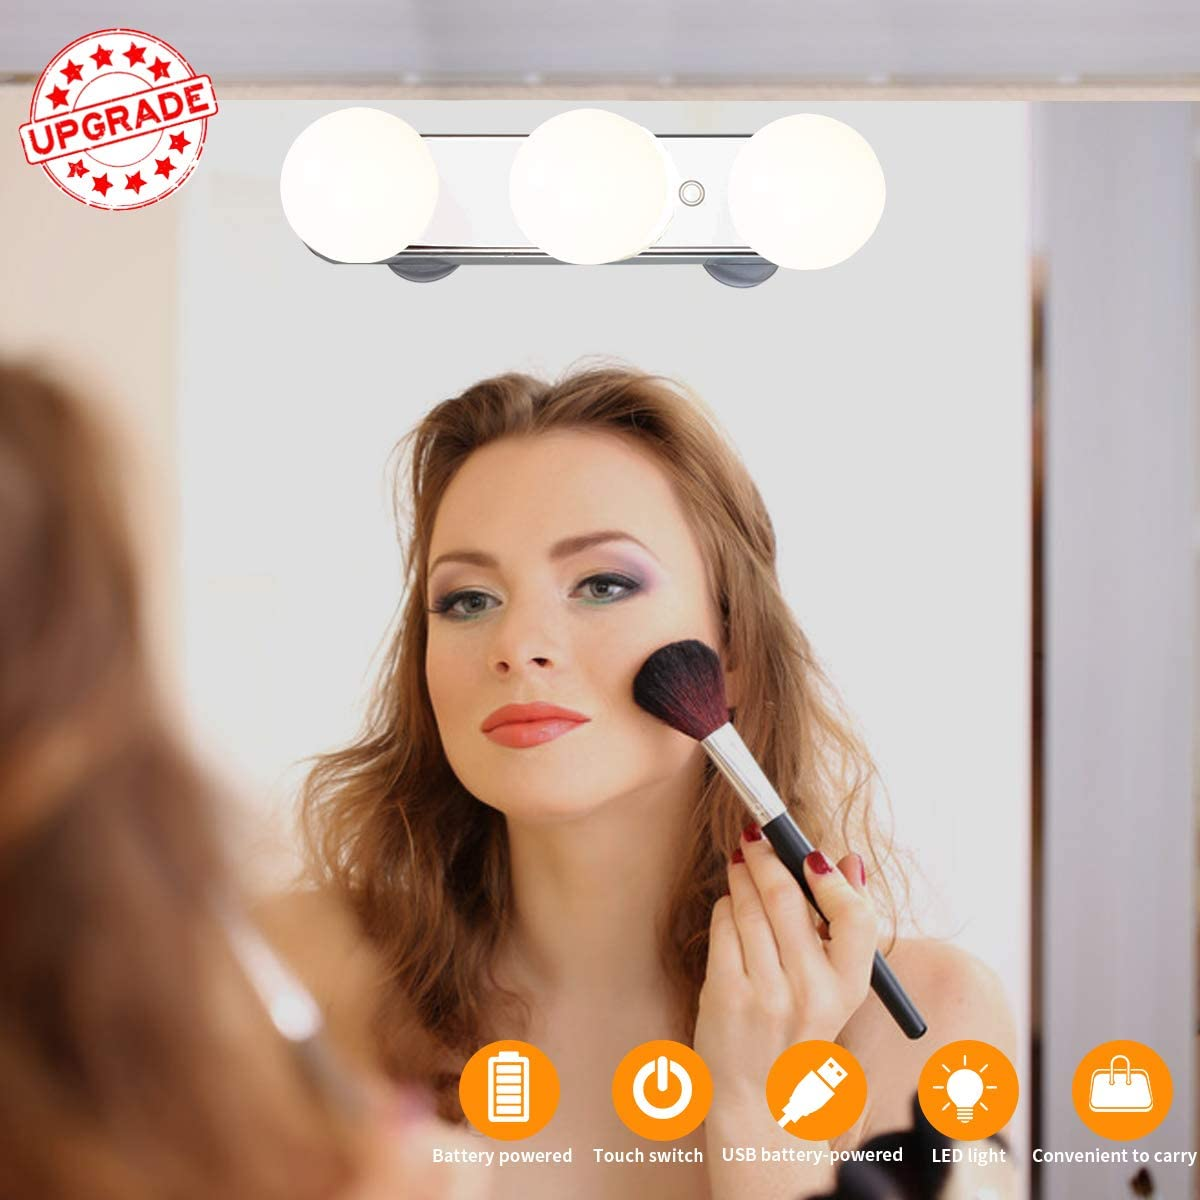 Wireless LED Vanity Lights, Upgrade Brightness Travel Portable Makeup Mirror Lights with 5 Mode Lights for Bathroom,Hotel,Washrooms.Support USB Cable and Battery Operated Vanity Lights White